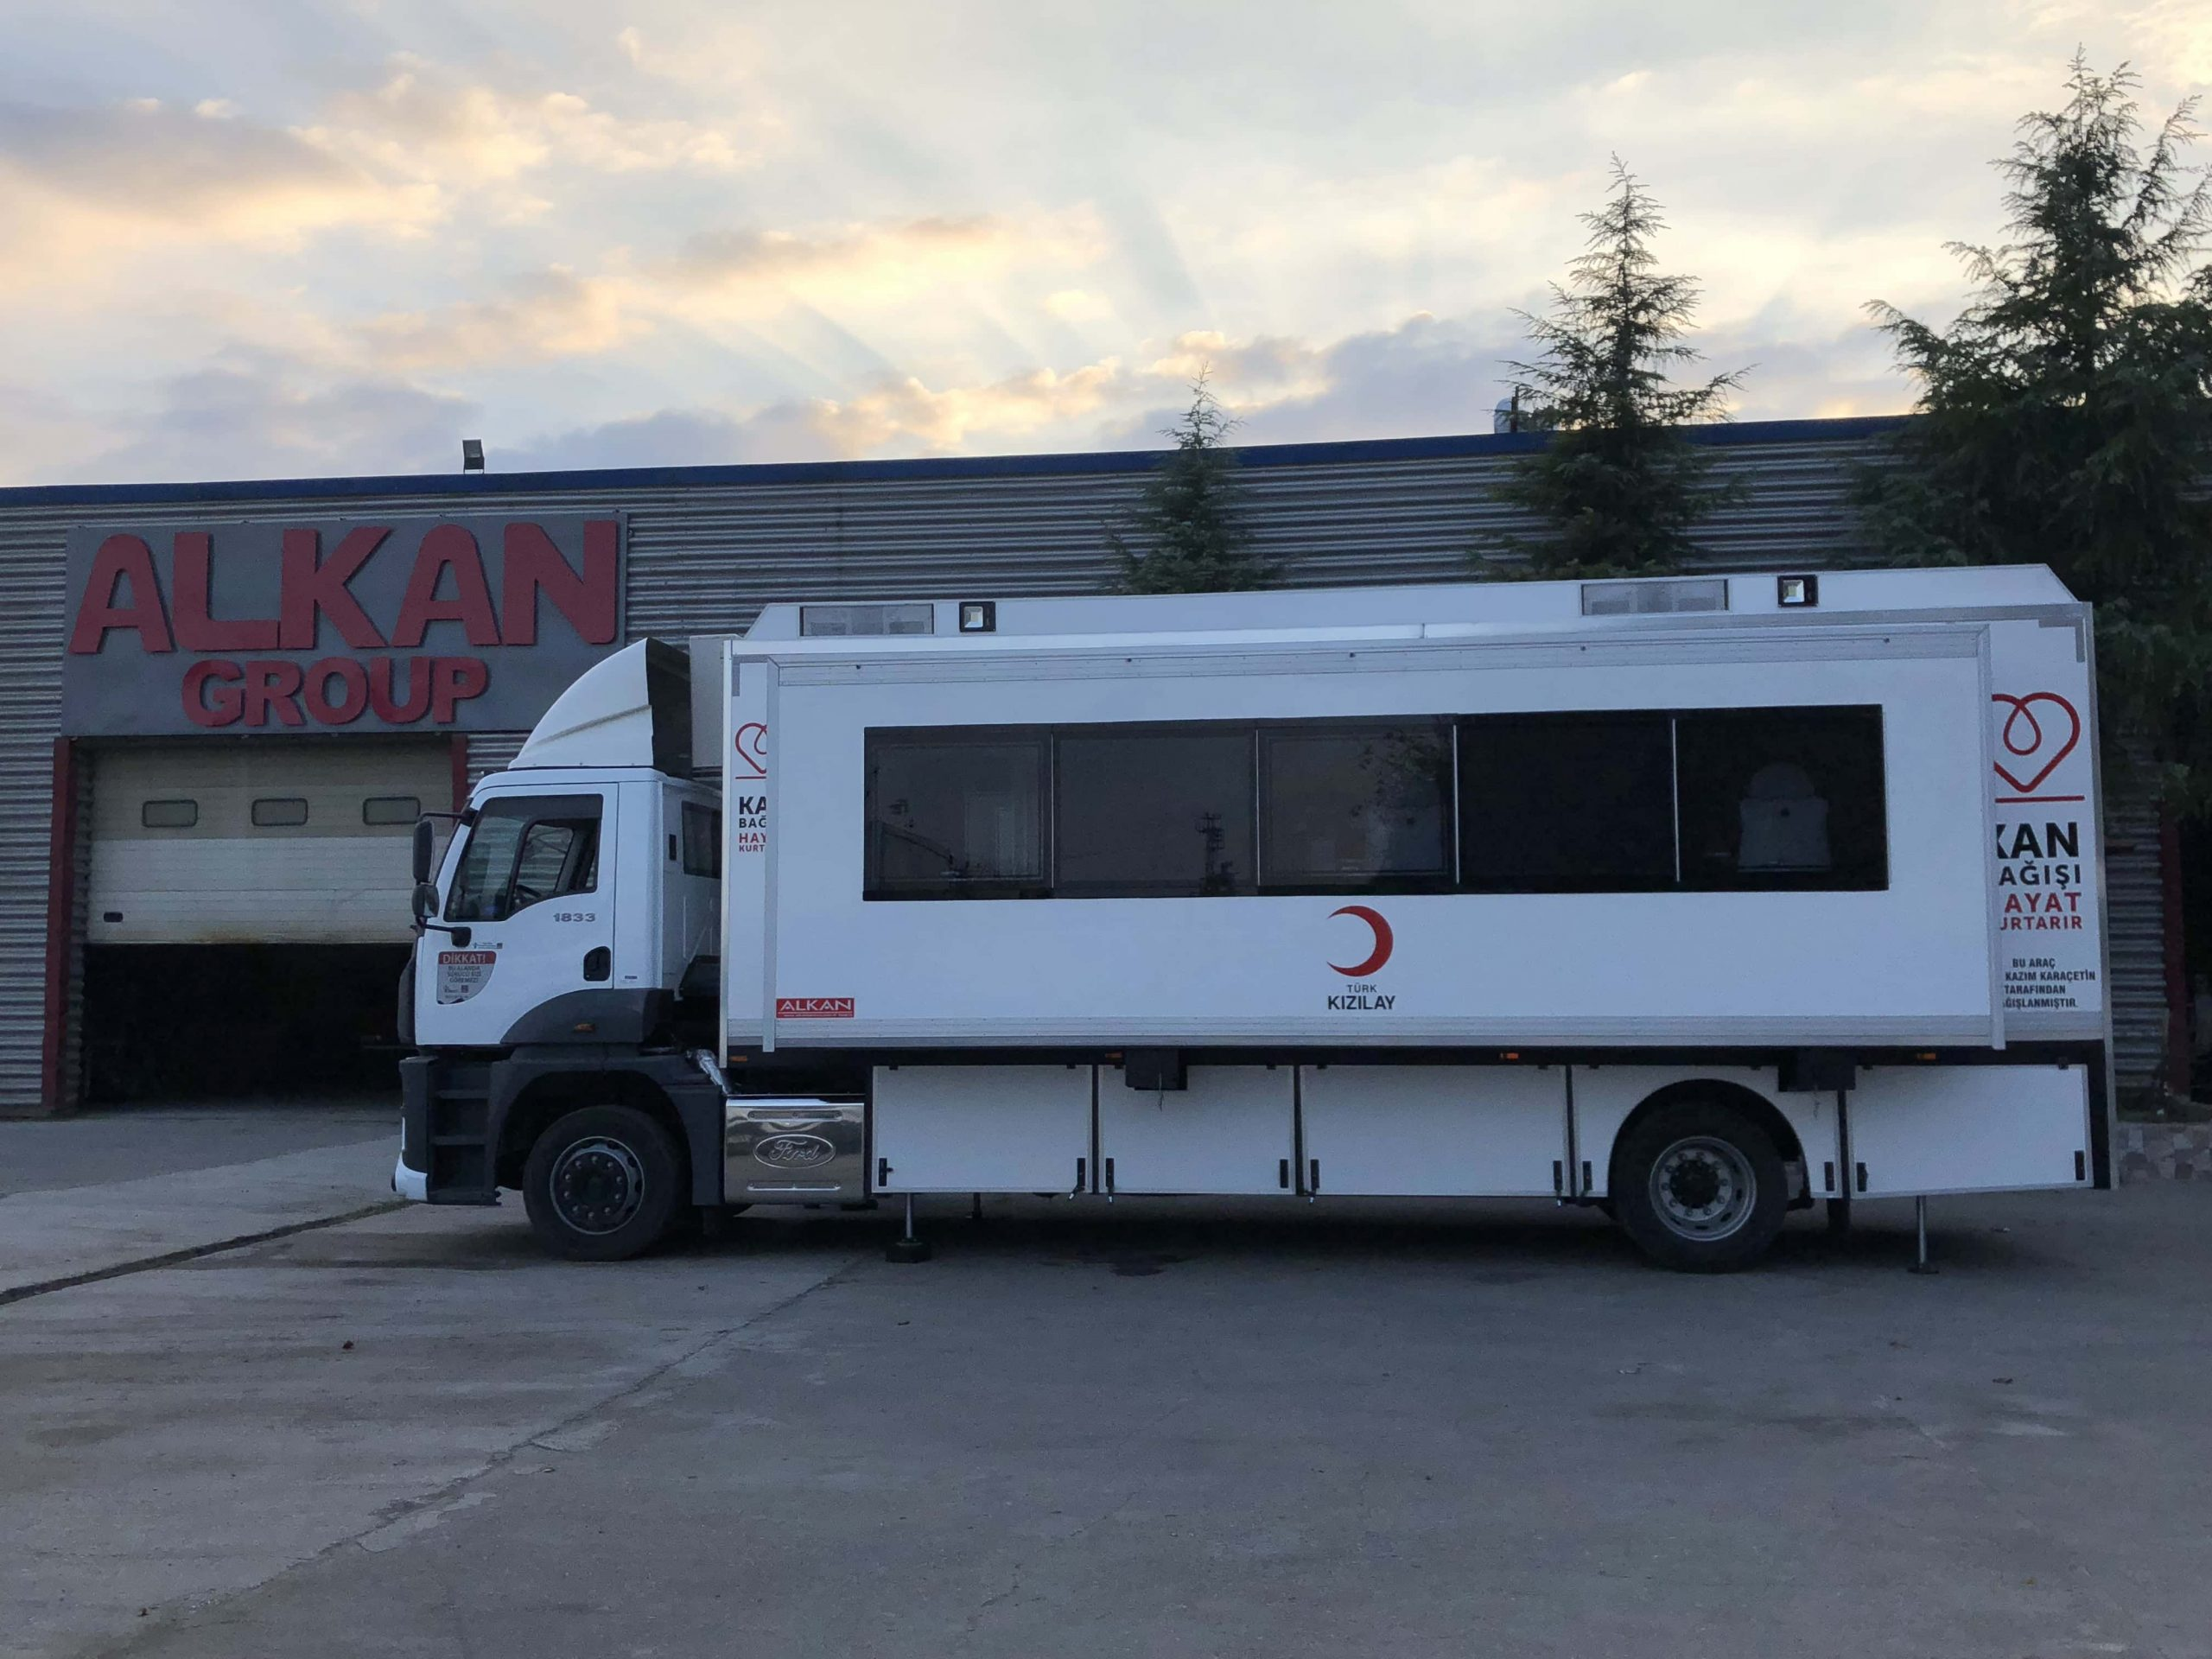 mobile-blood-donation-vehicle-trailer-6-scaled.jpg